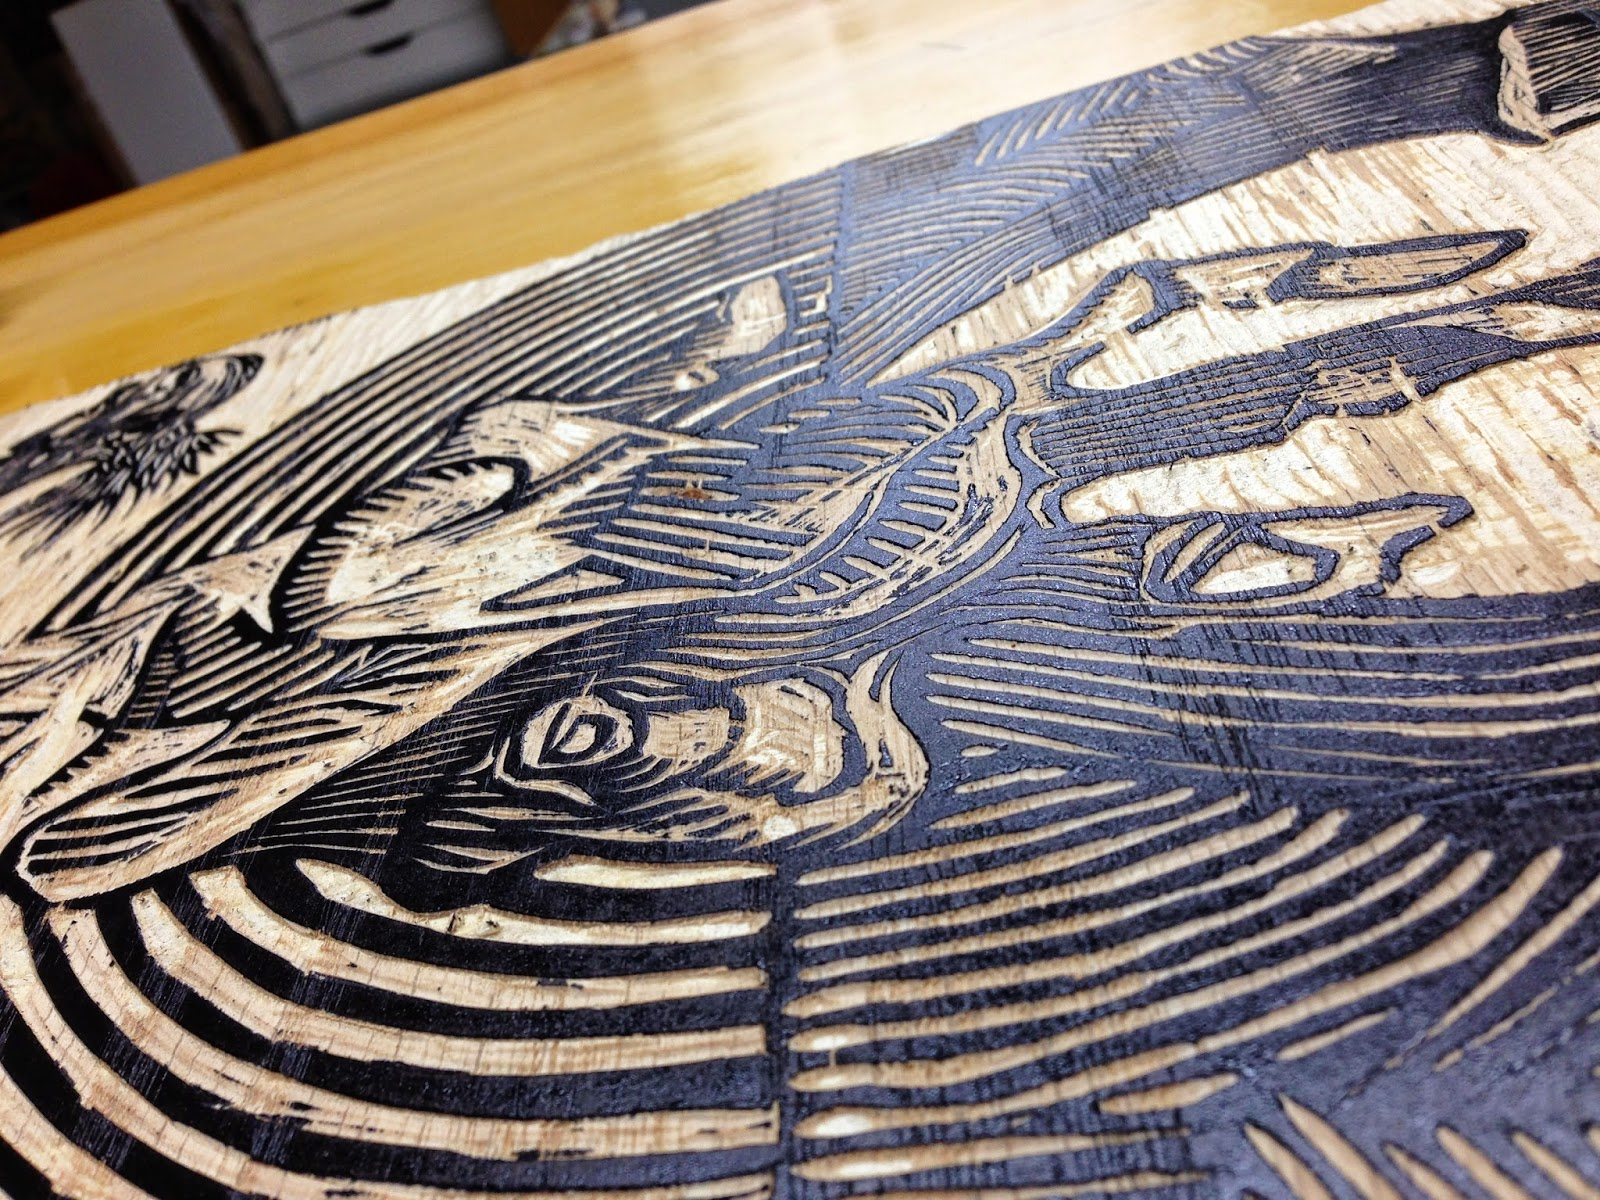 Detail of a woodblock.